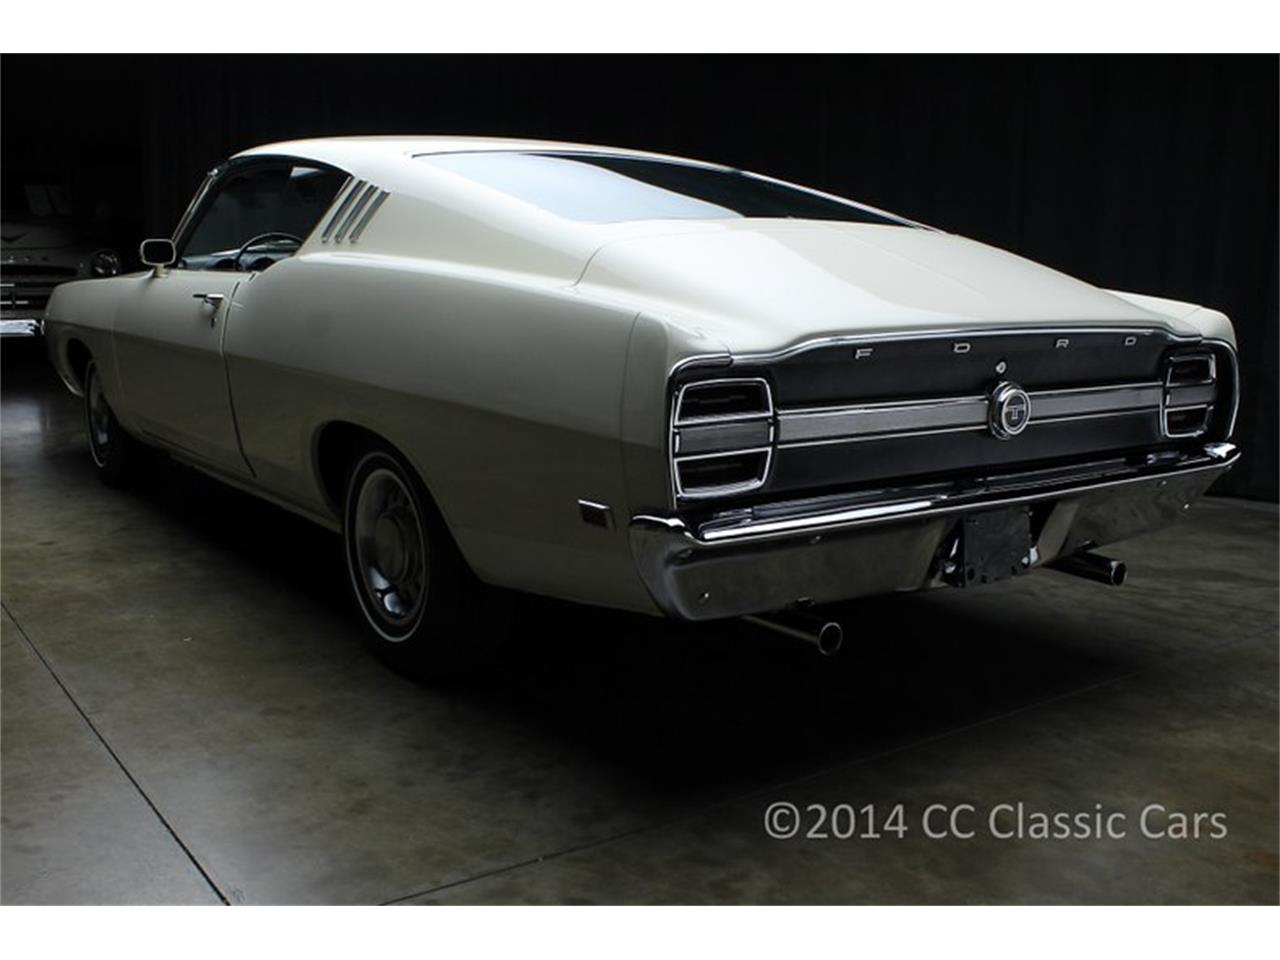 Large Picture of Classic '69 Ford Torino - $69,900.00 Offered by CC Classic Cars - HZ0H